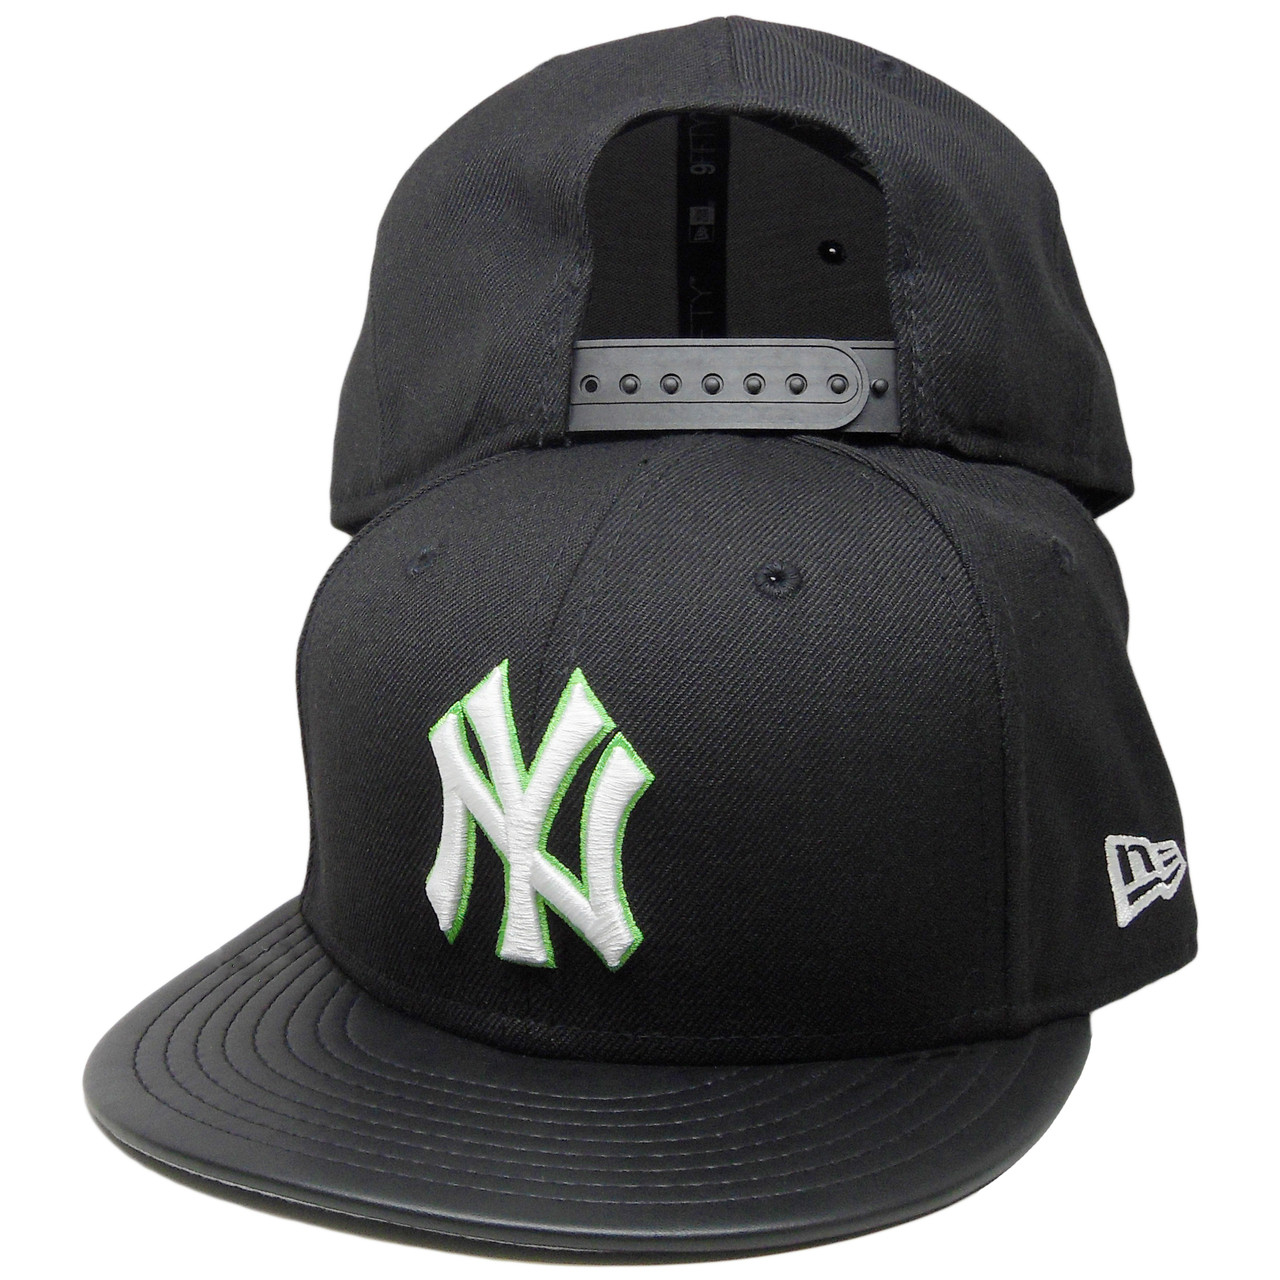 90986dec New York Yankees New Era 9Fifty Custom Snapback Hat - Black, Green, White